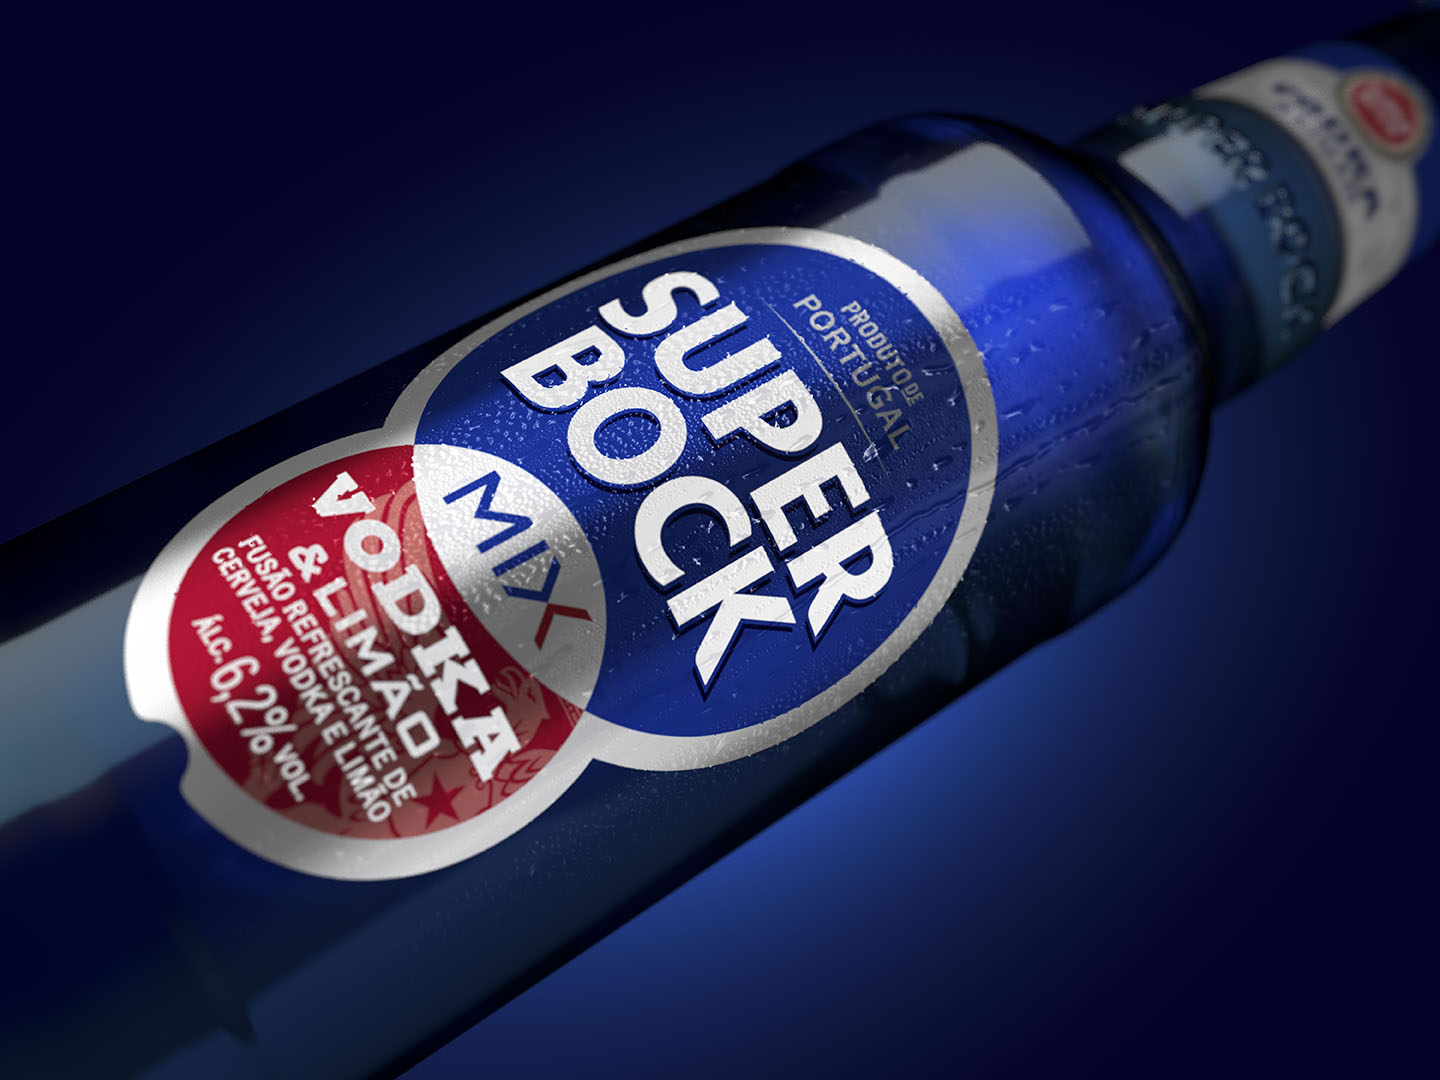 Pic.: Super Bock flavoured beers